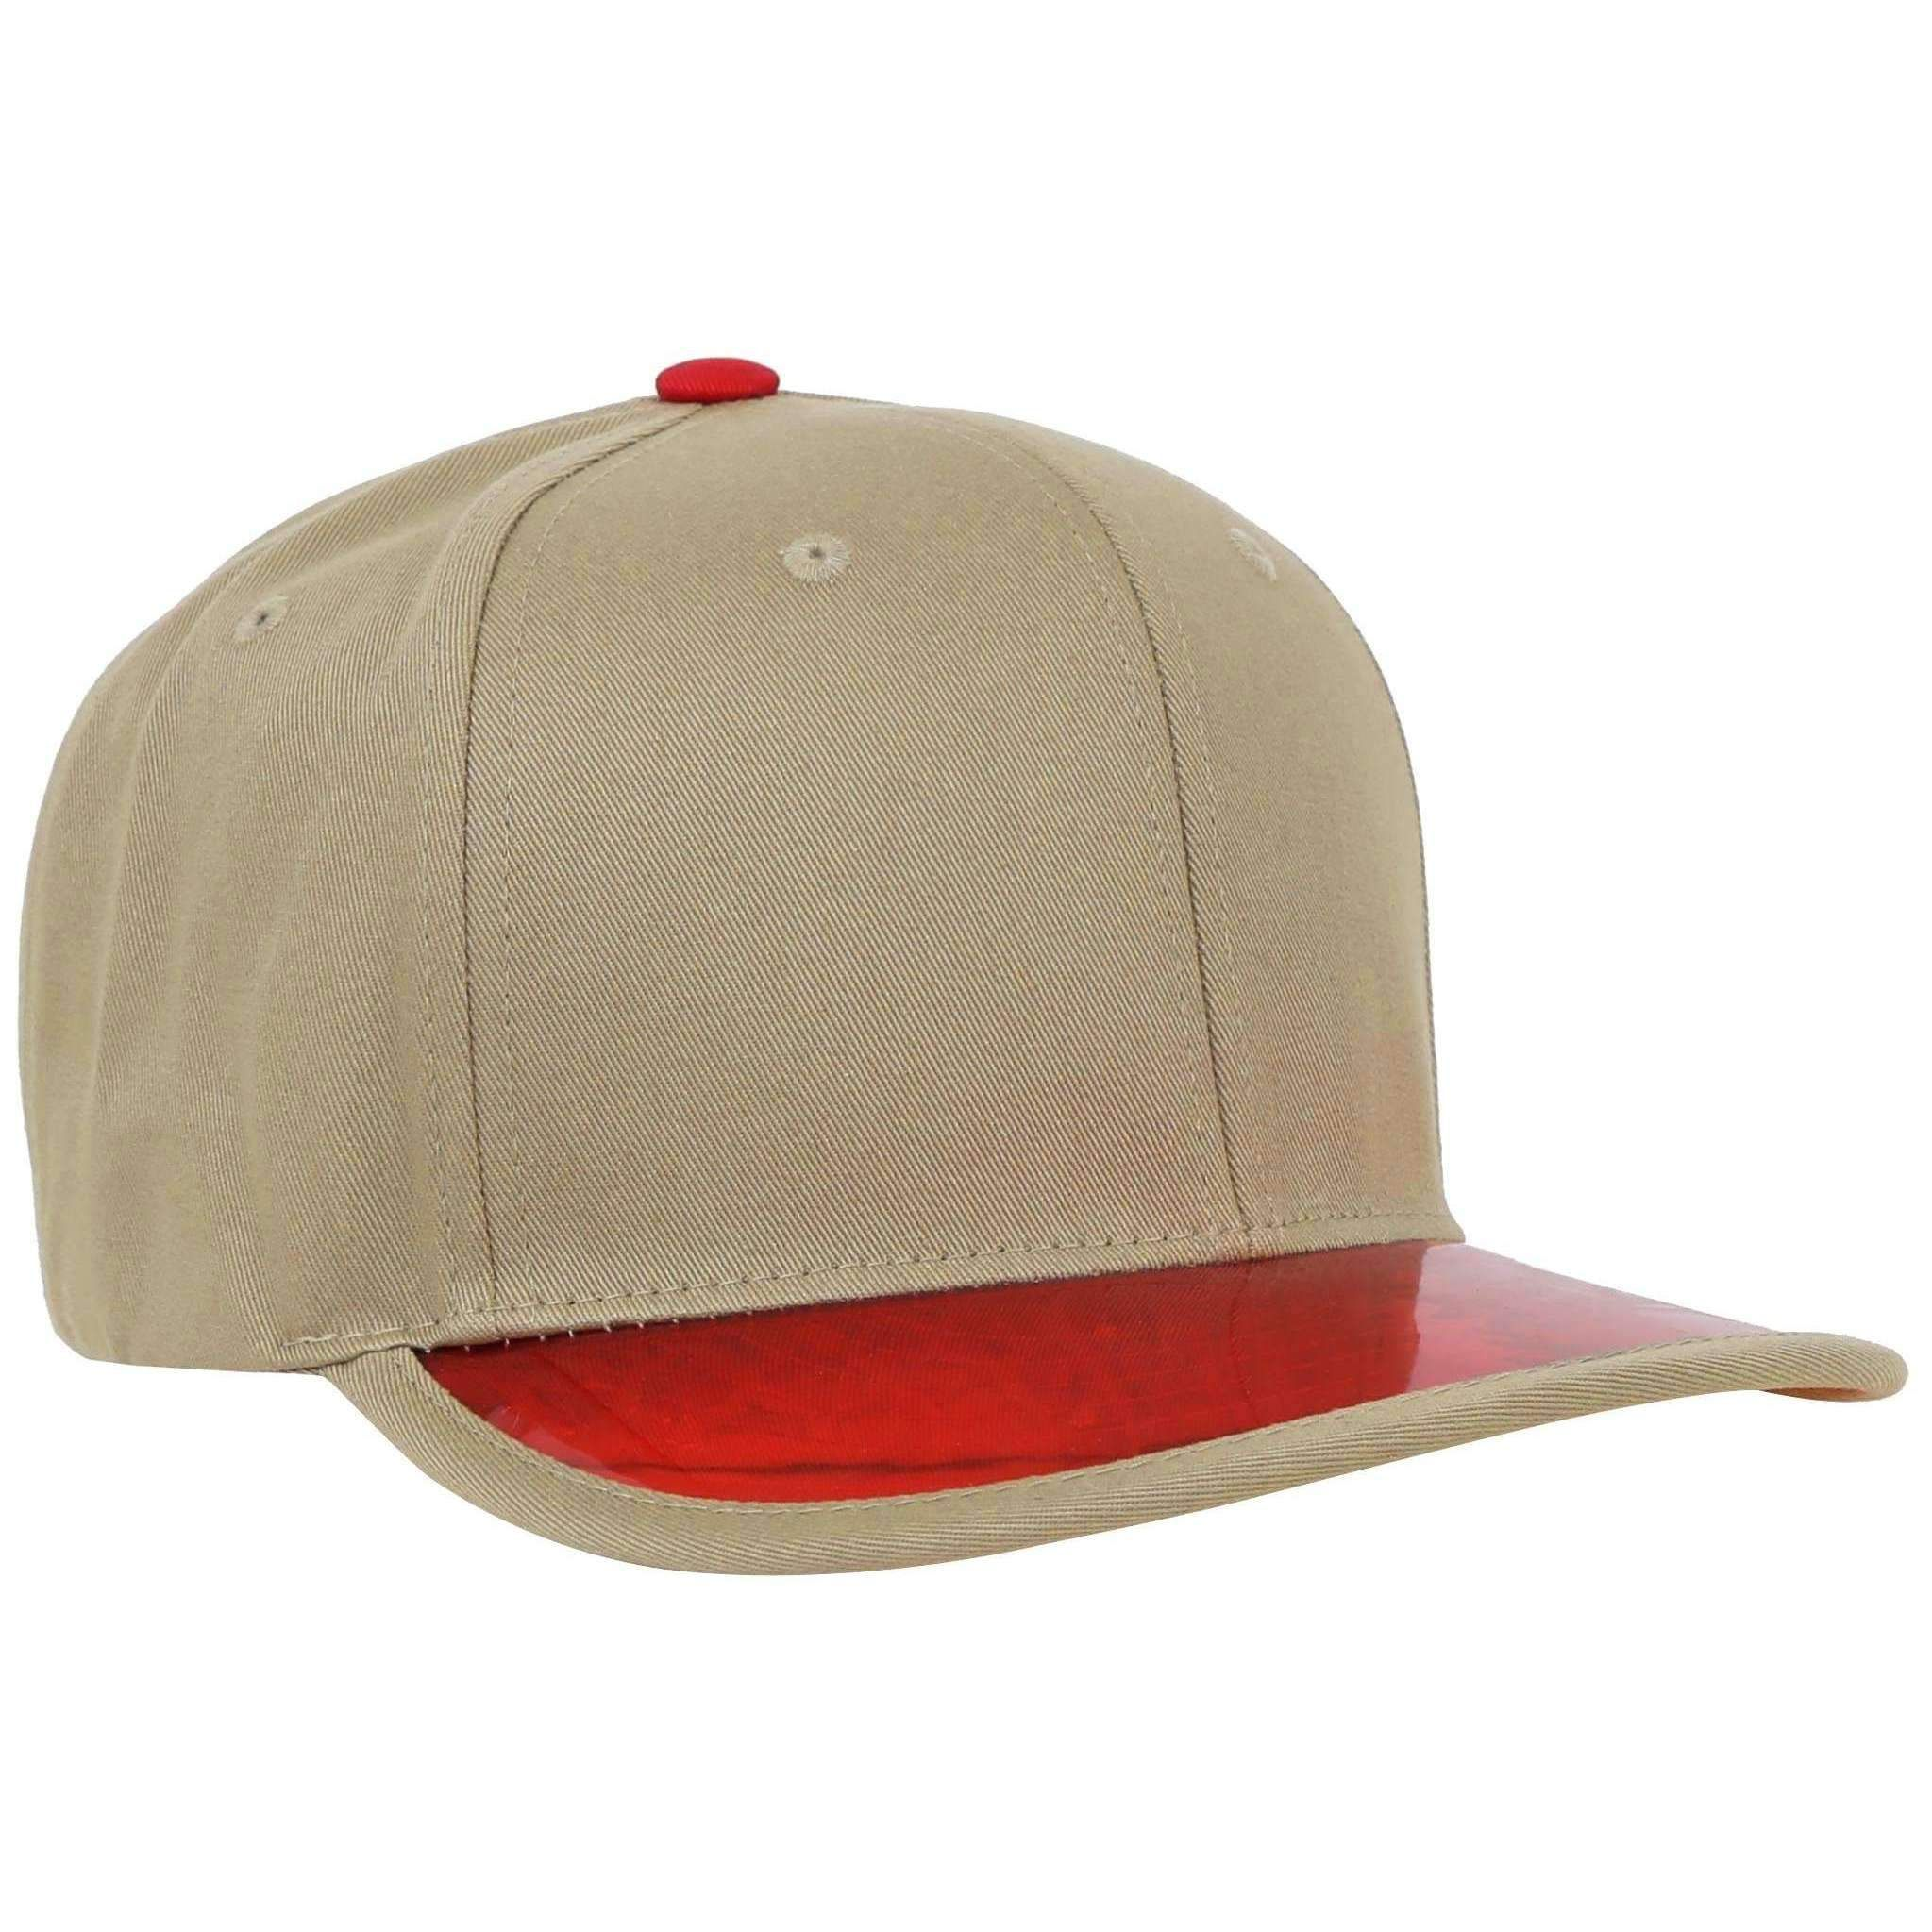 Plain Adjustable Snapback with UV Protection